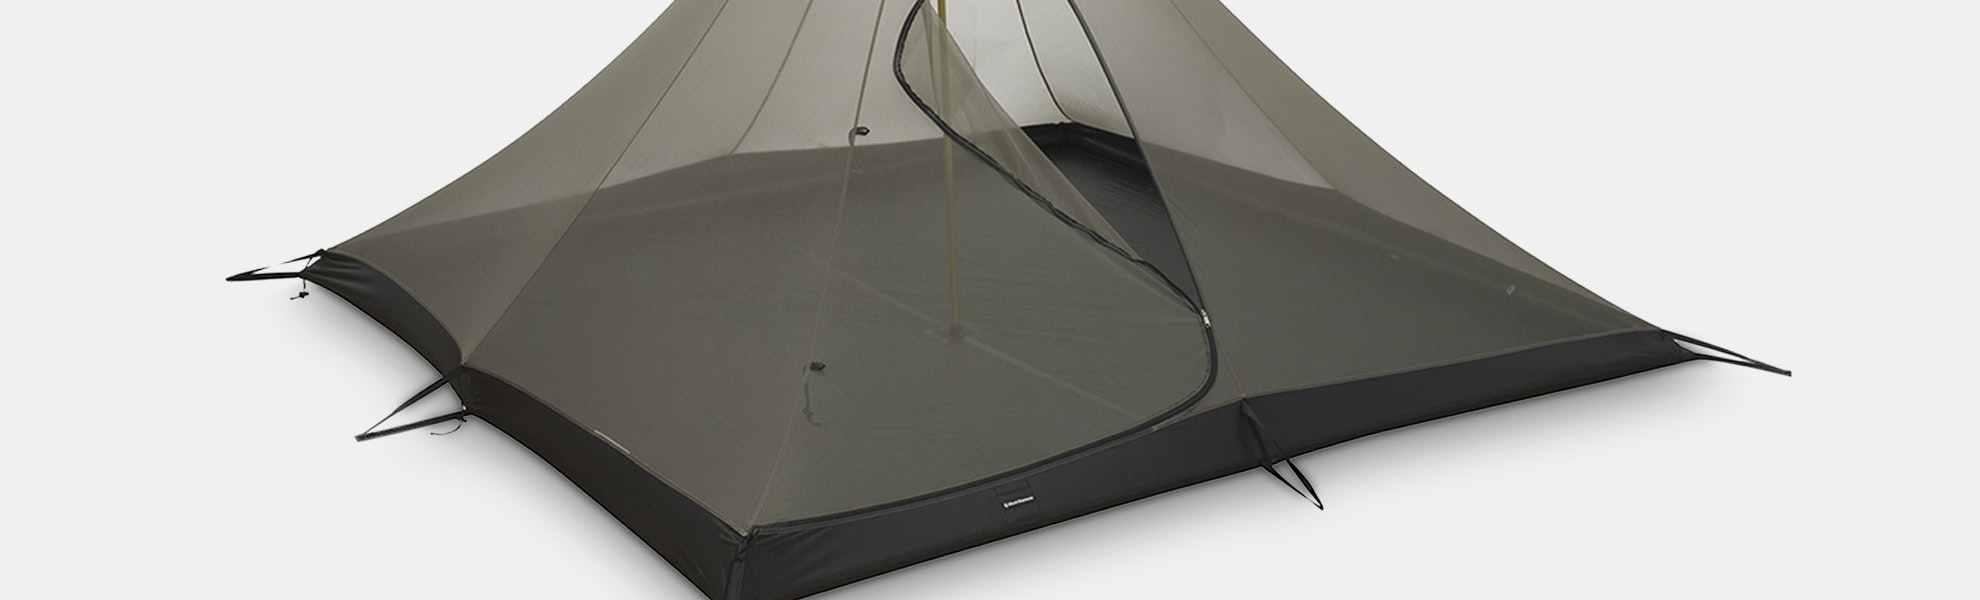 Black Diamond Mega Light u0026 Mega Bug Tents & Black Diamond Mega Light u0026 Mega Bug Tents | Price u0026 Reviews | Massdrop